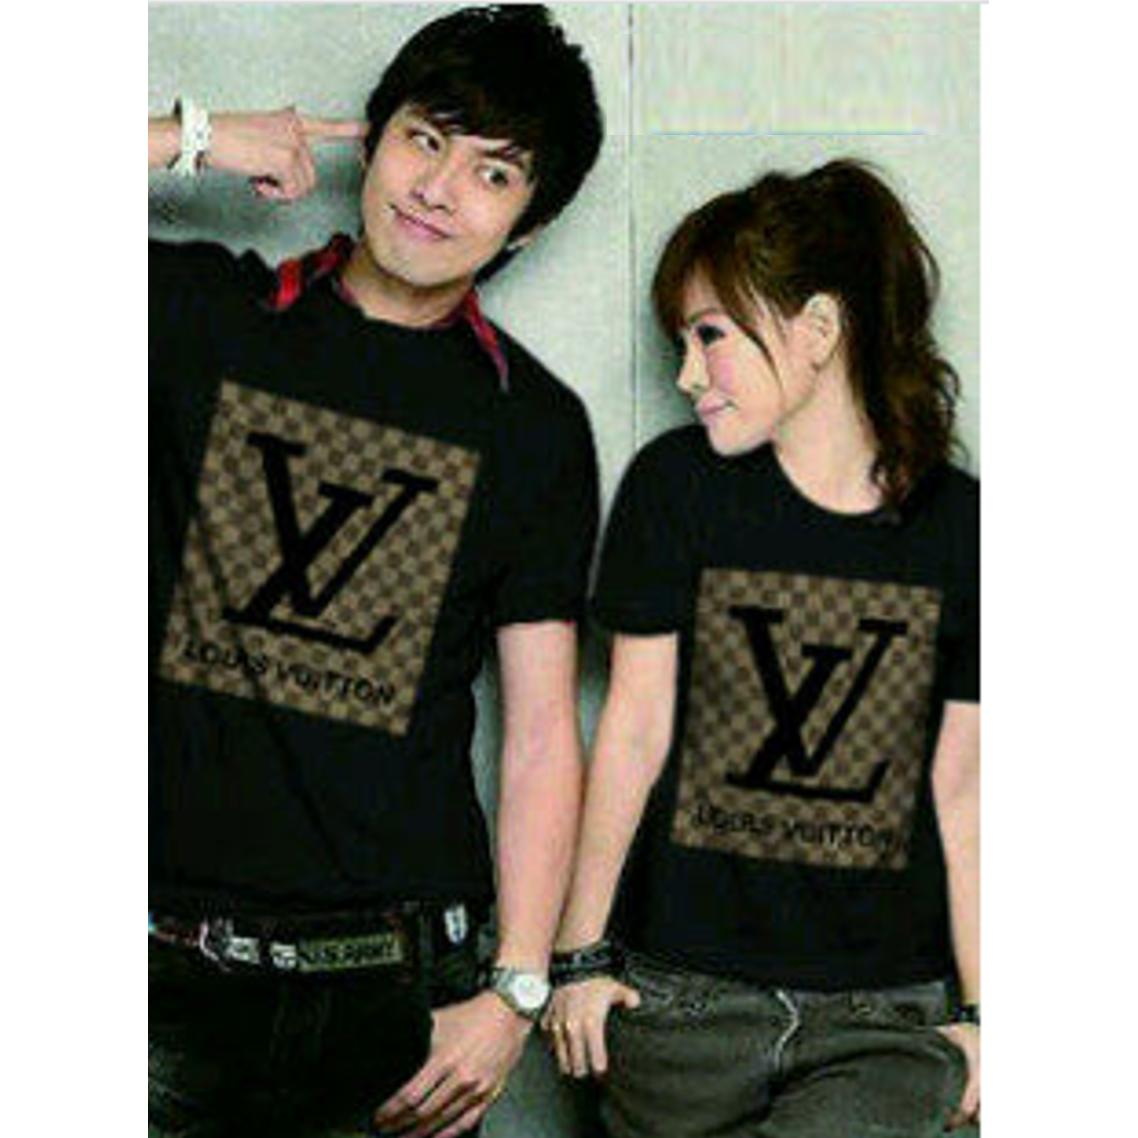 cs - kaos couple / t-shirt pasangan lengan pendek KENZO PARIS I TOWER PARIS I LUV I